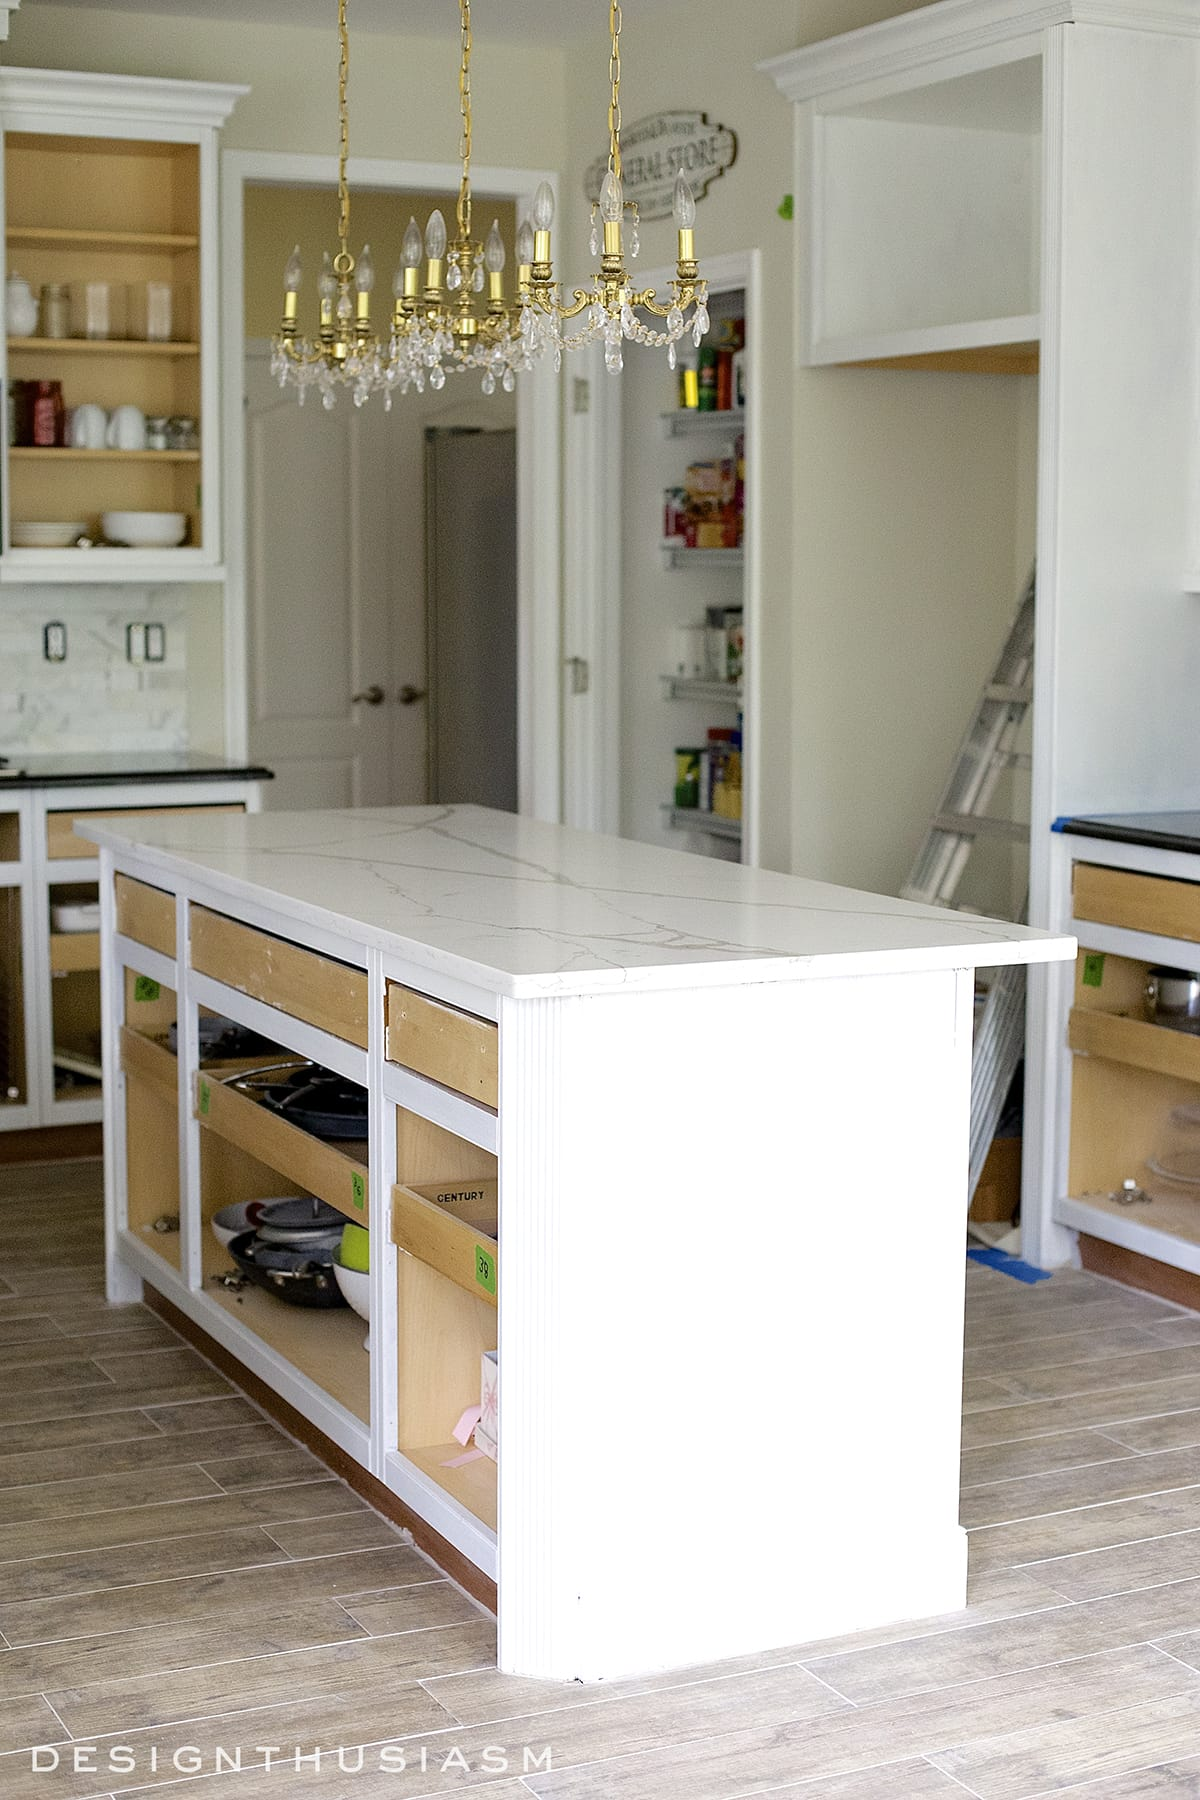 Quickest Way To Paint Kitchen Cabinets White Painted Cabinets Simplify A Kitchen Renovation